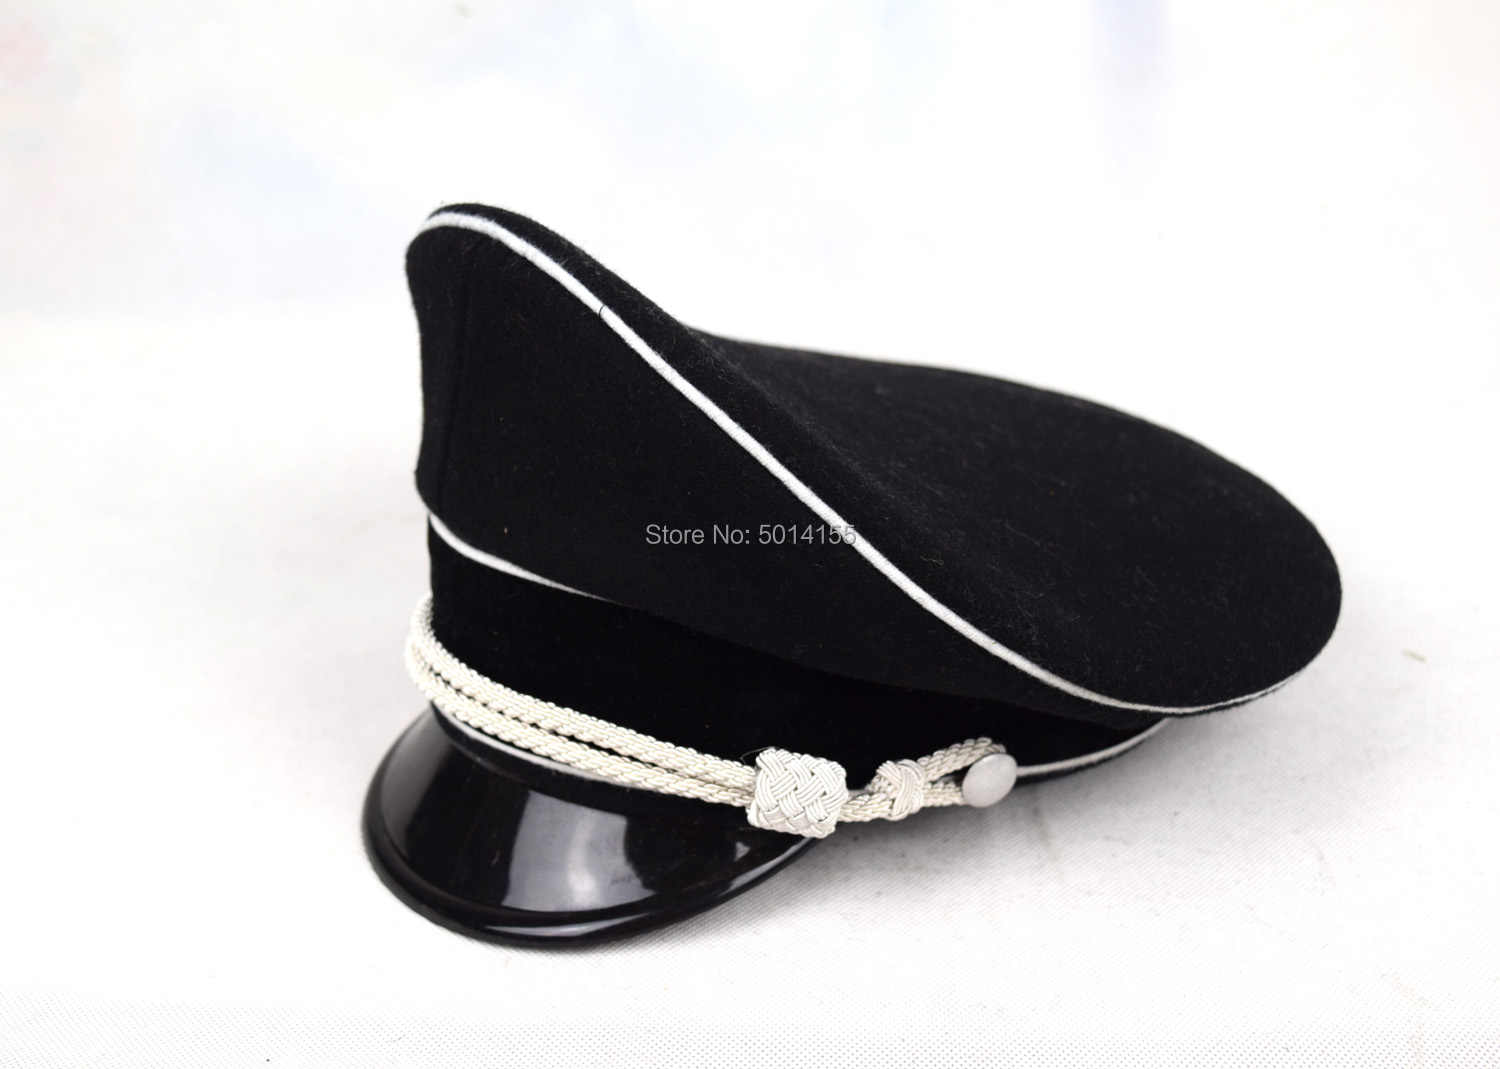 Repro WWII WW2 German Officer Hat Silver Color Metal Chin Strap Cap Accessories